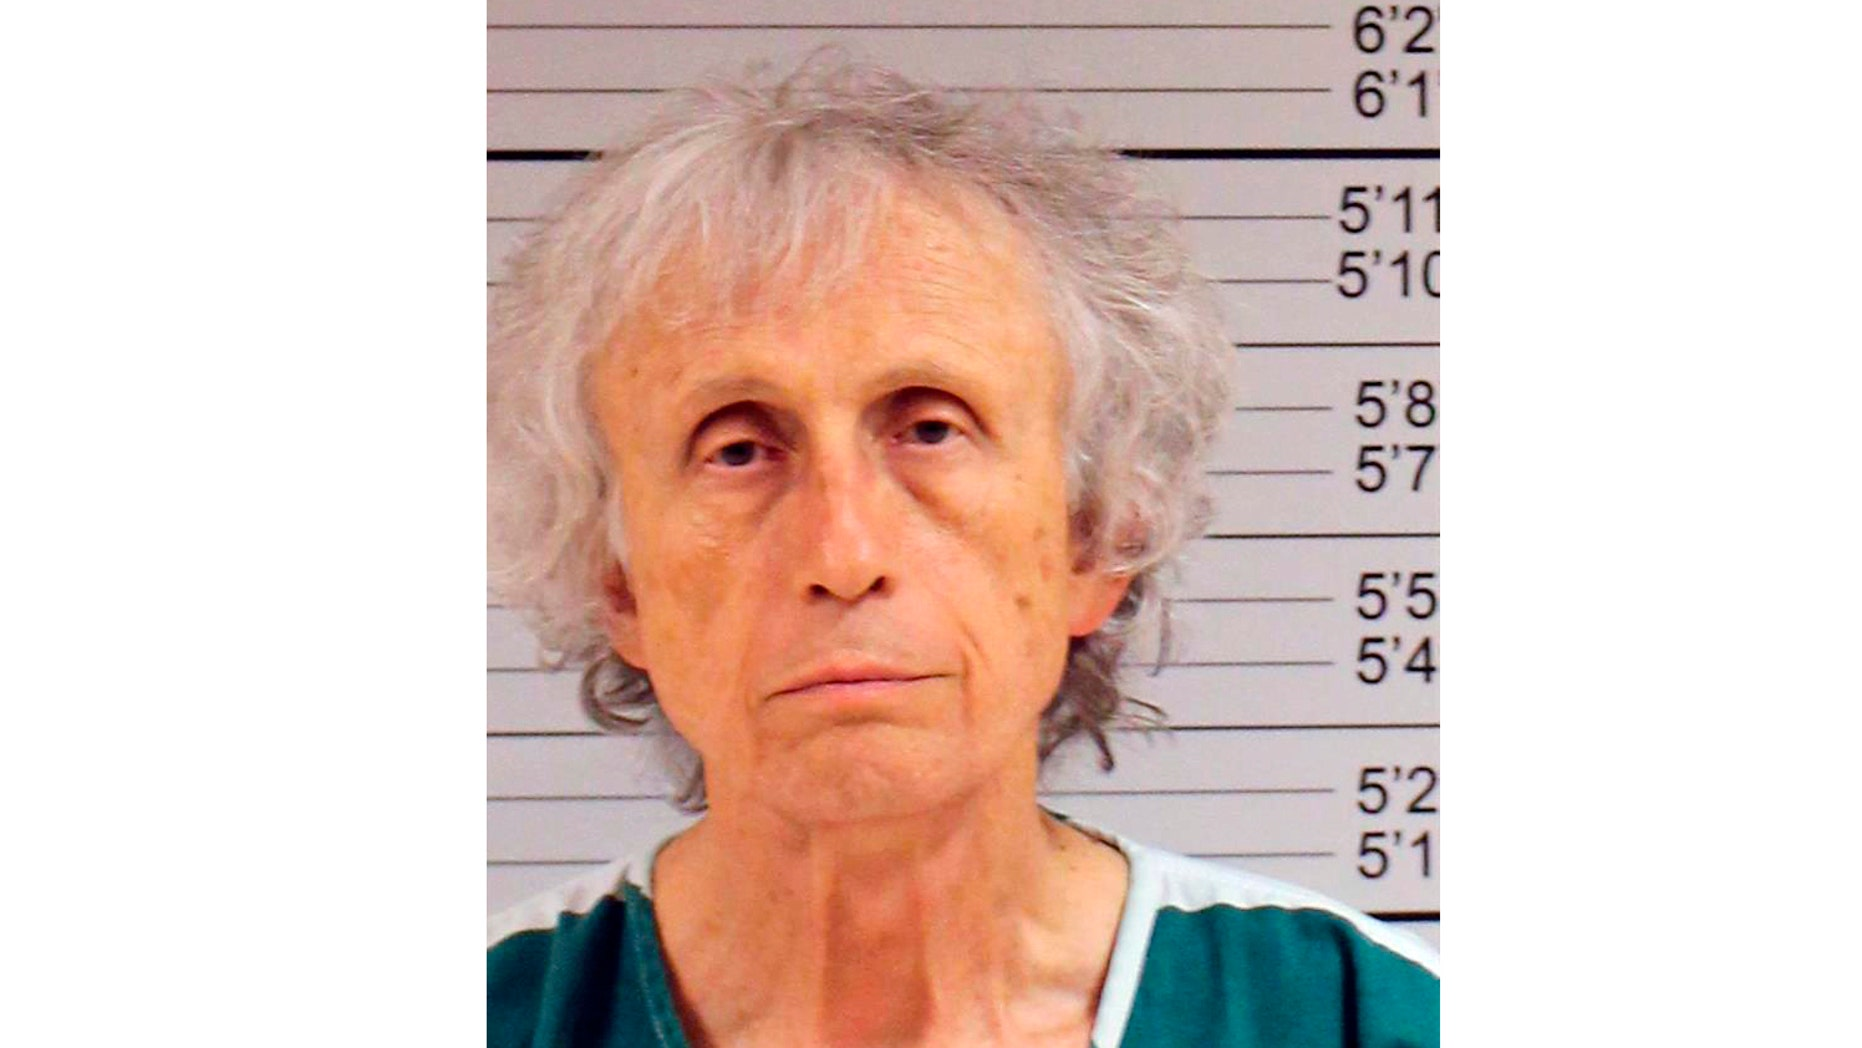 This undated photo provided by Cambria County Prison shows Dr. Johnnie Barto. Barto, a pediatrician, faces sexual assault charges involving more than 30 girls and boys since the late 1980s, including a dozen after regulators cleared him in 2000 of wrongdoing. Barto was arrested in Jan. 2018. He has pleaded not guilty. (Cambria County Prison via AP)